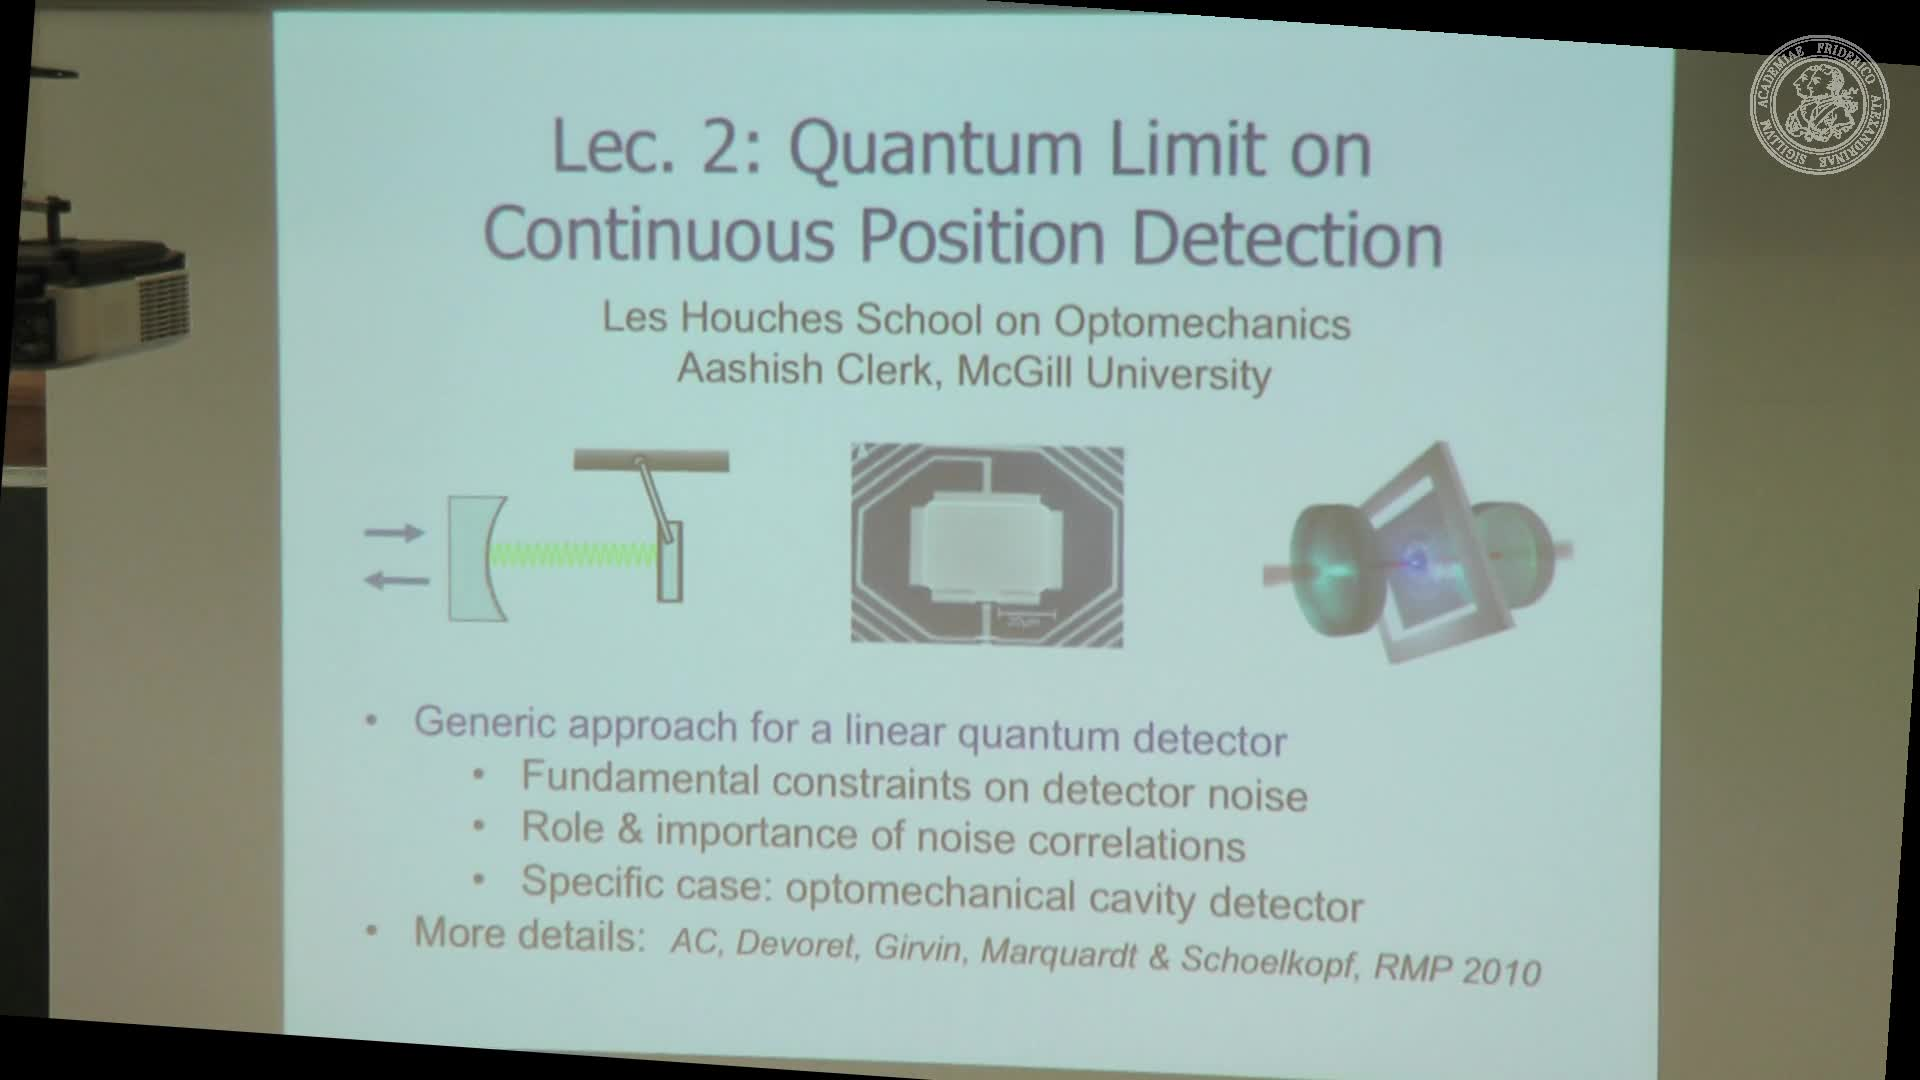 Optomechanics and quantum measurement - 2 preview image